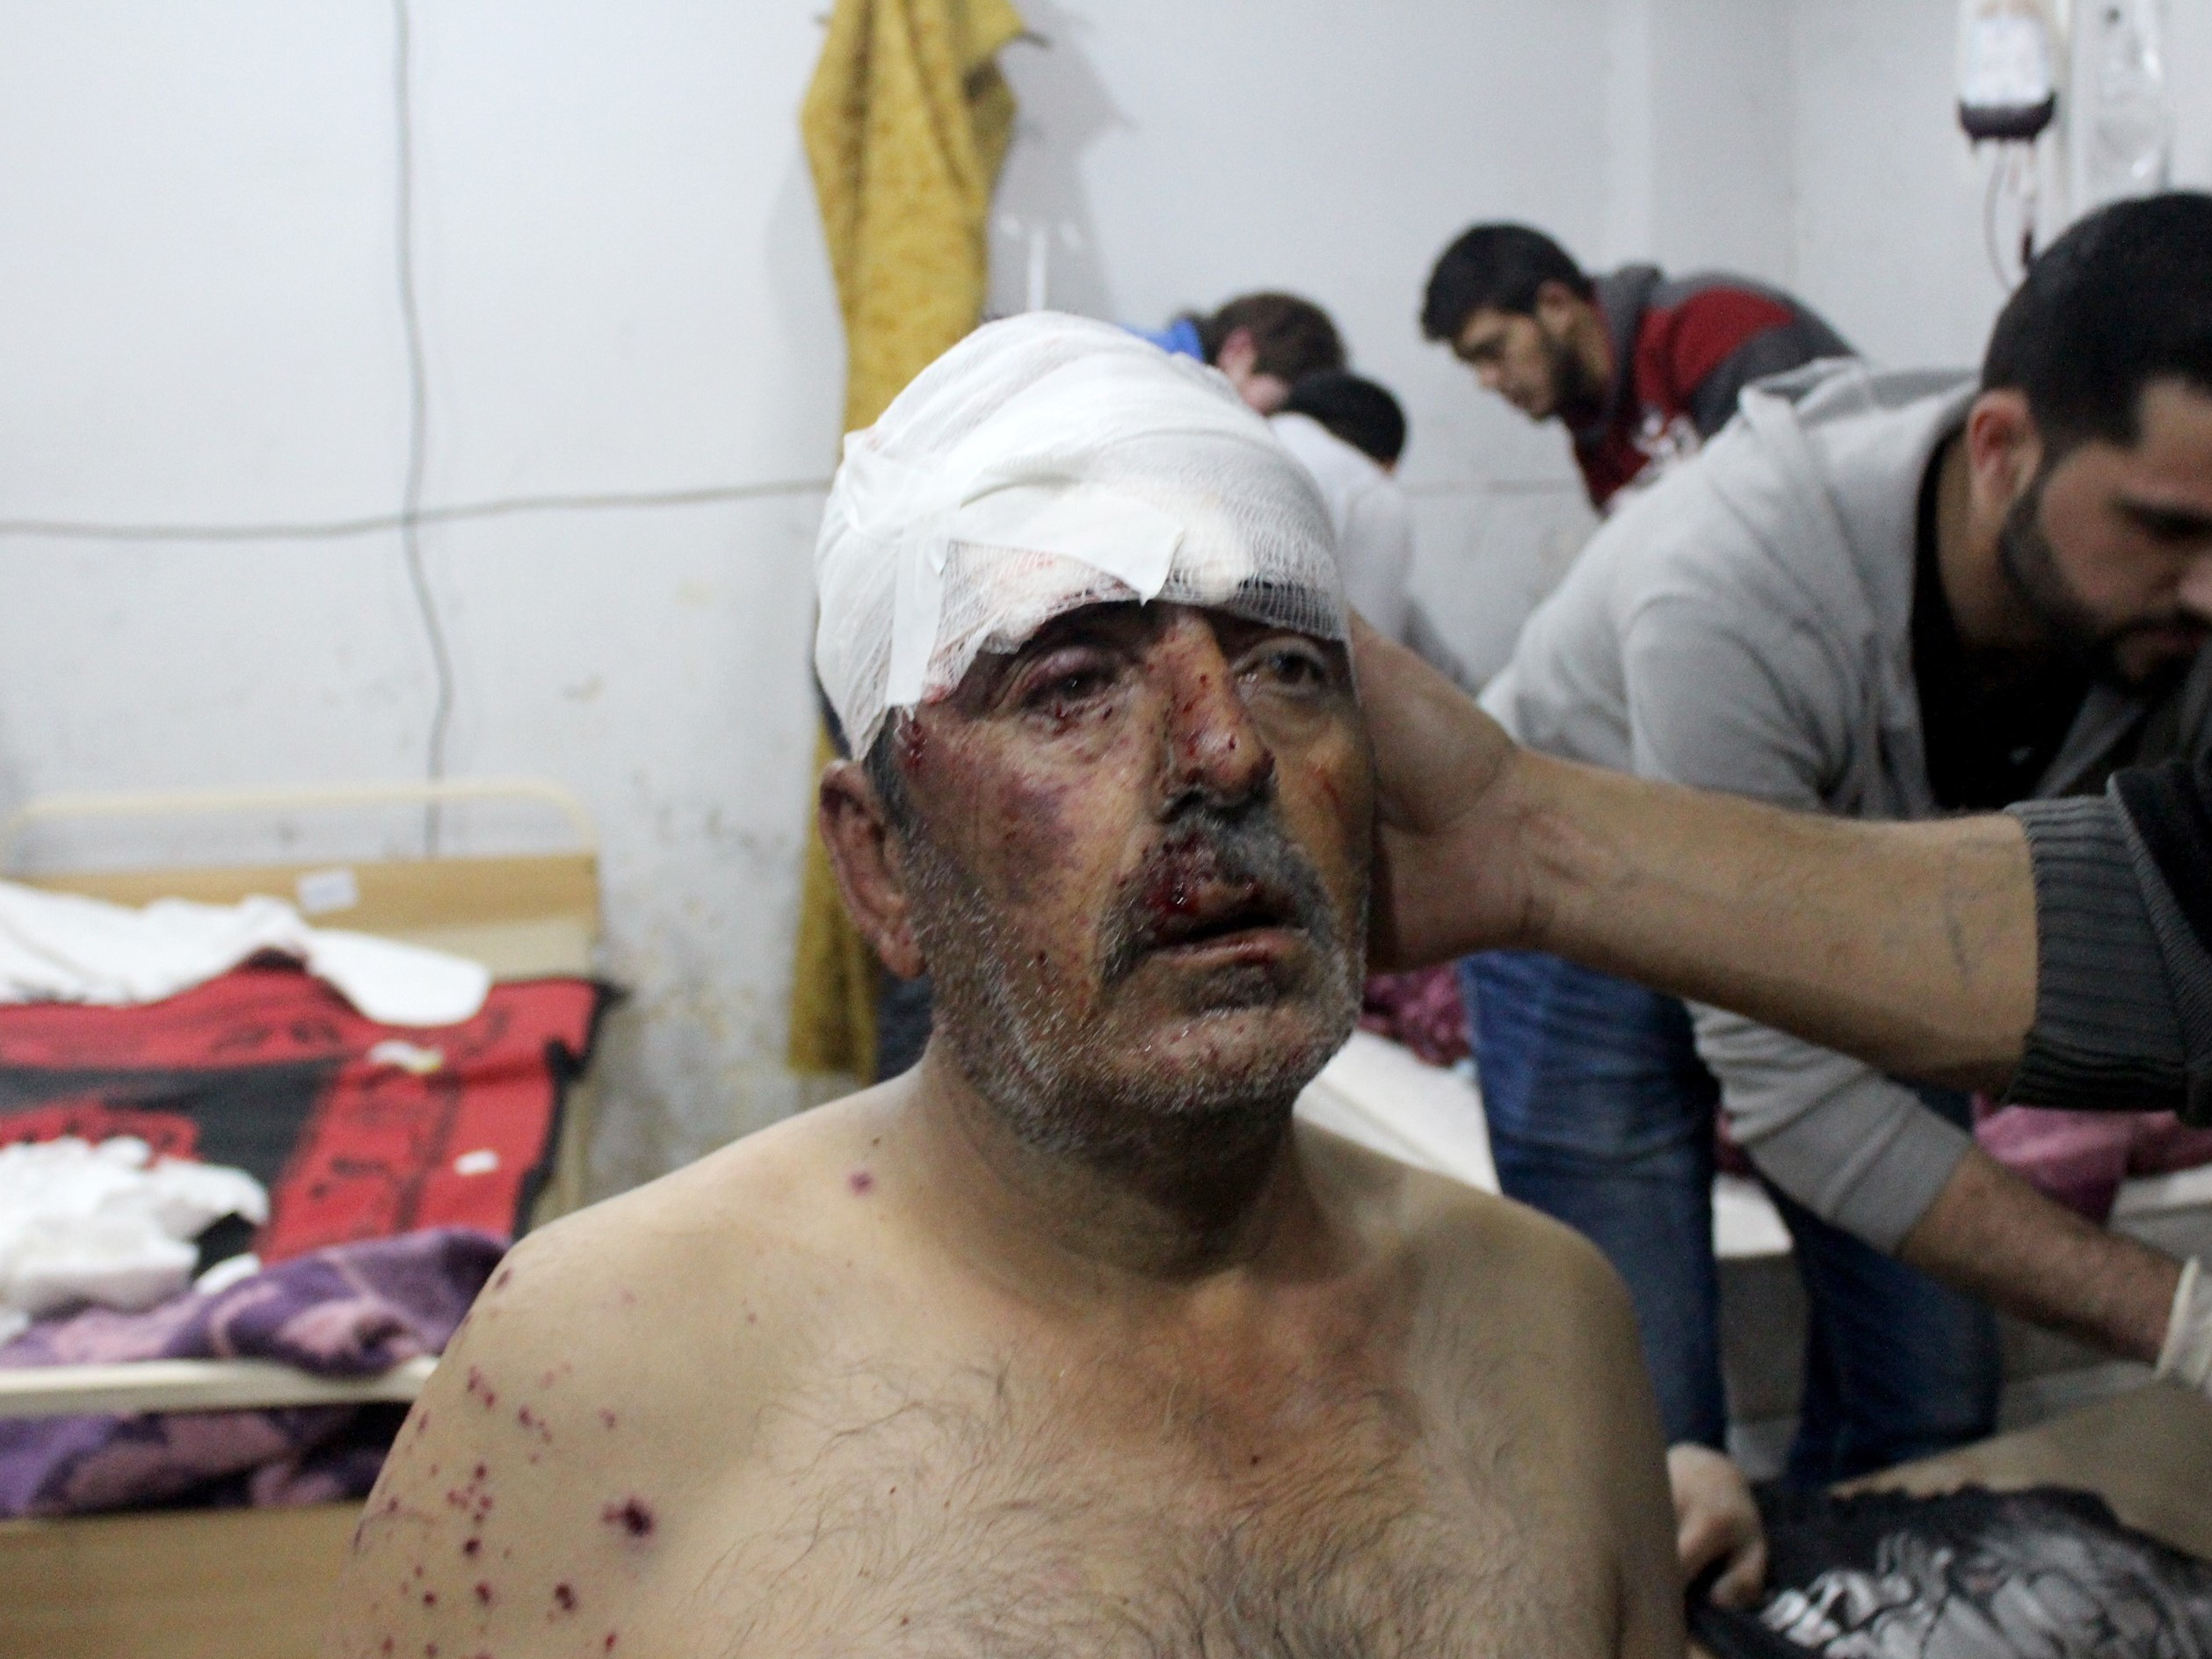 A wounded man receives treatment following airstrikes in Idlib province. (Abdulghani Arian/Anadolu Agency/Getty Images)